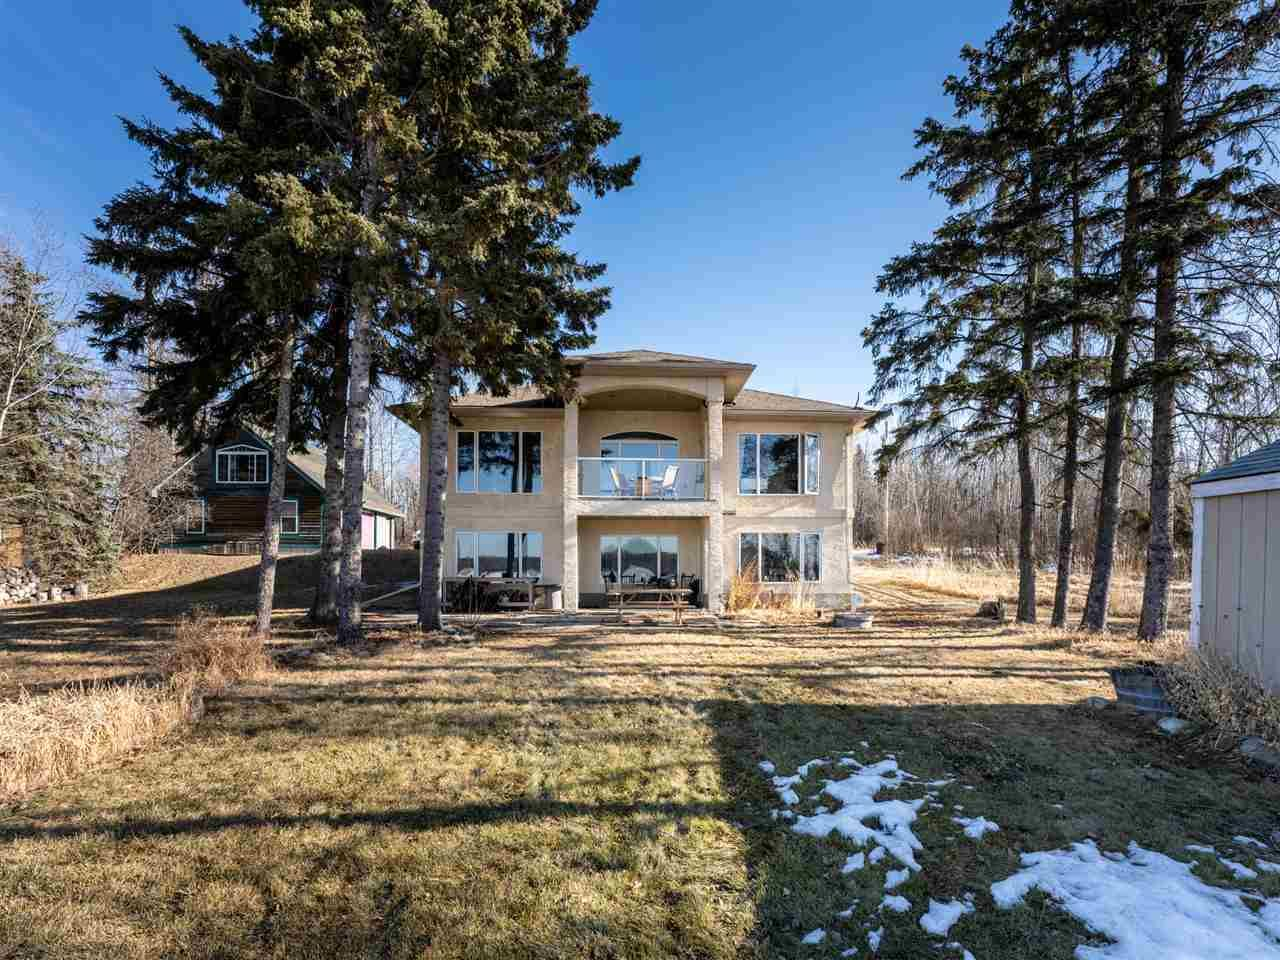 Main Photo: 195 Lakeshore Drive: Rural Lac Ste. Anne County House for sale : MLS®# E4235396